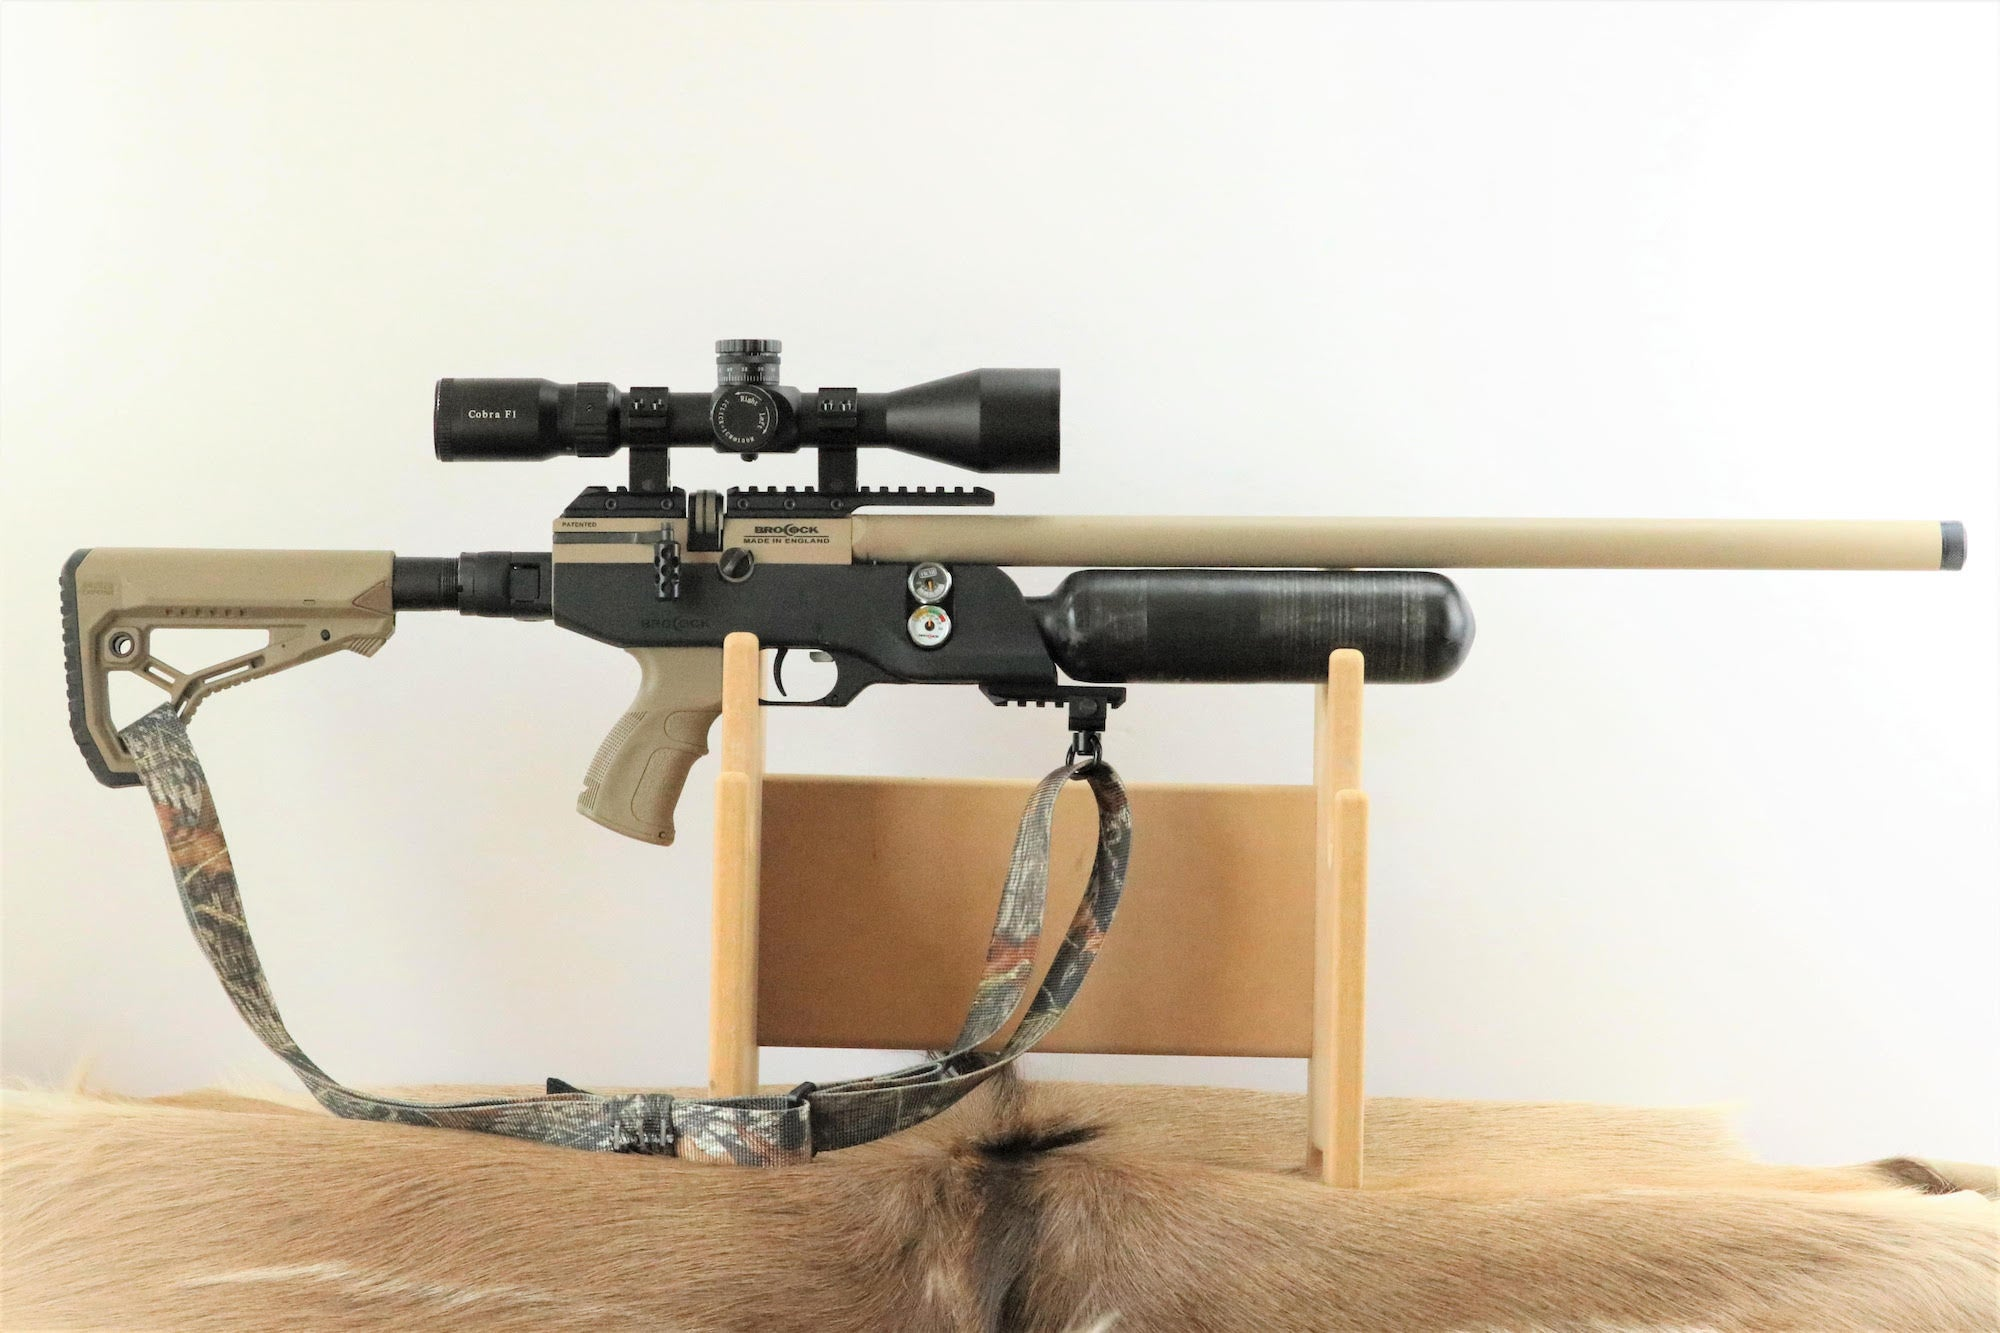 The Brocock Commander is our pick for best air rifle.